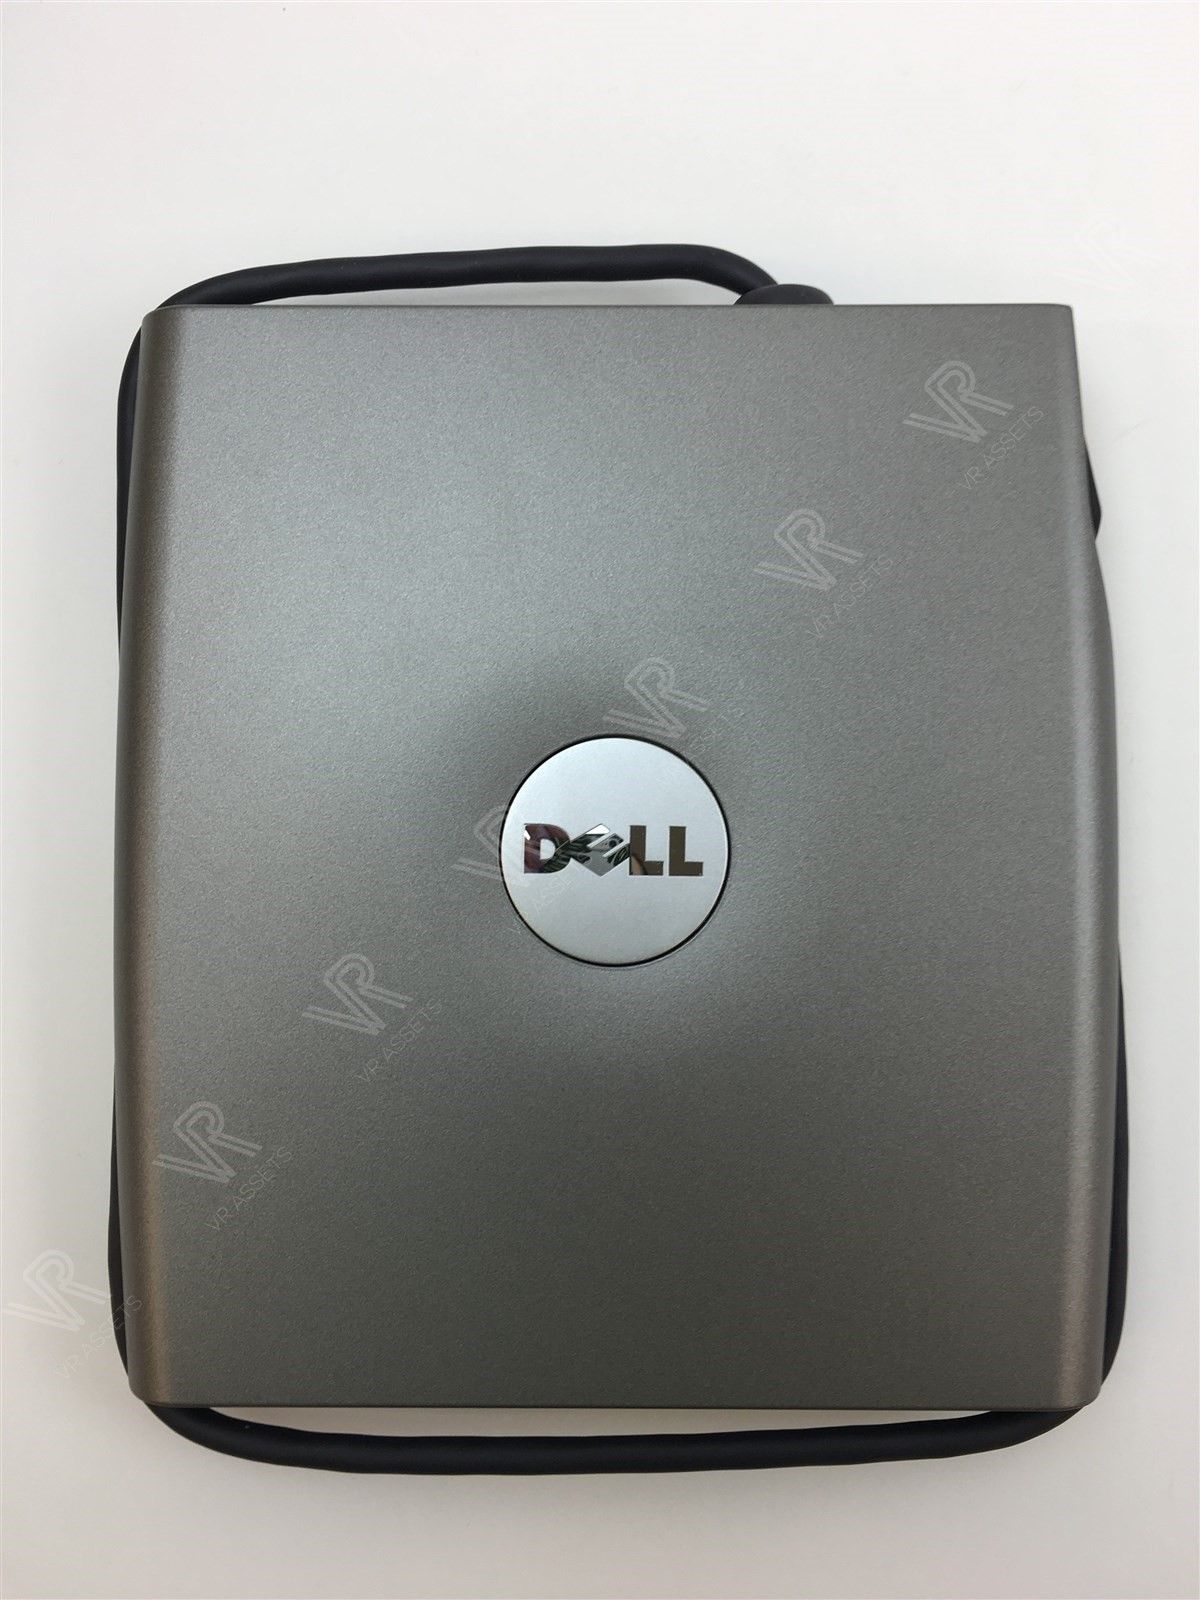 NEW Dell D-Series D/Bay External Media Module W/DVD UC793 PD01S  0UC793